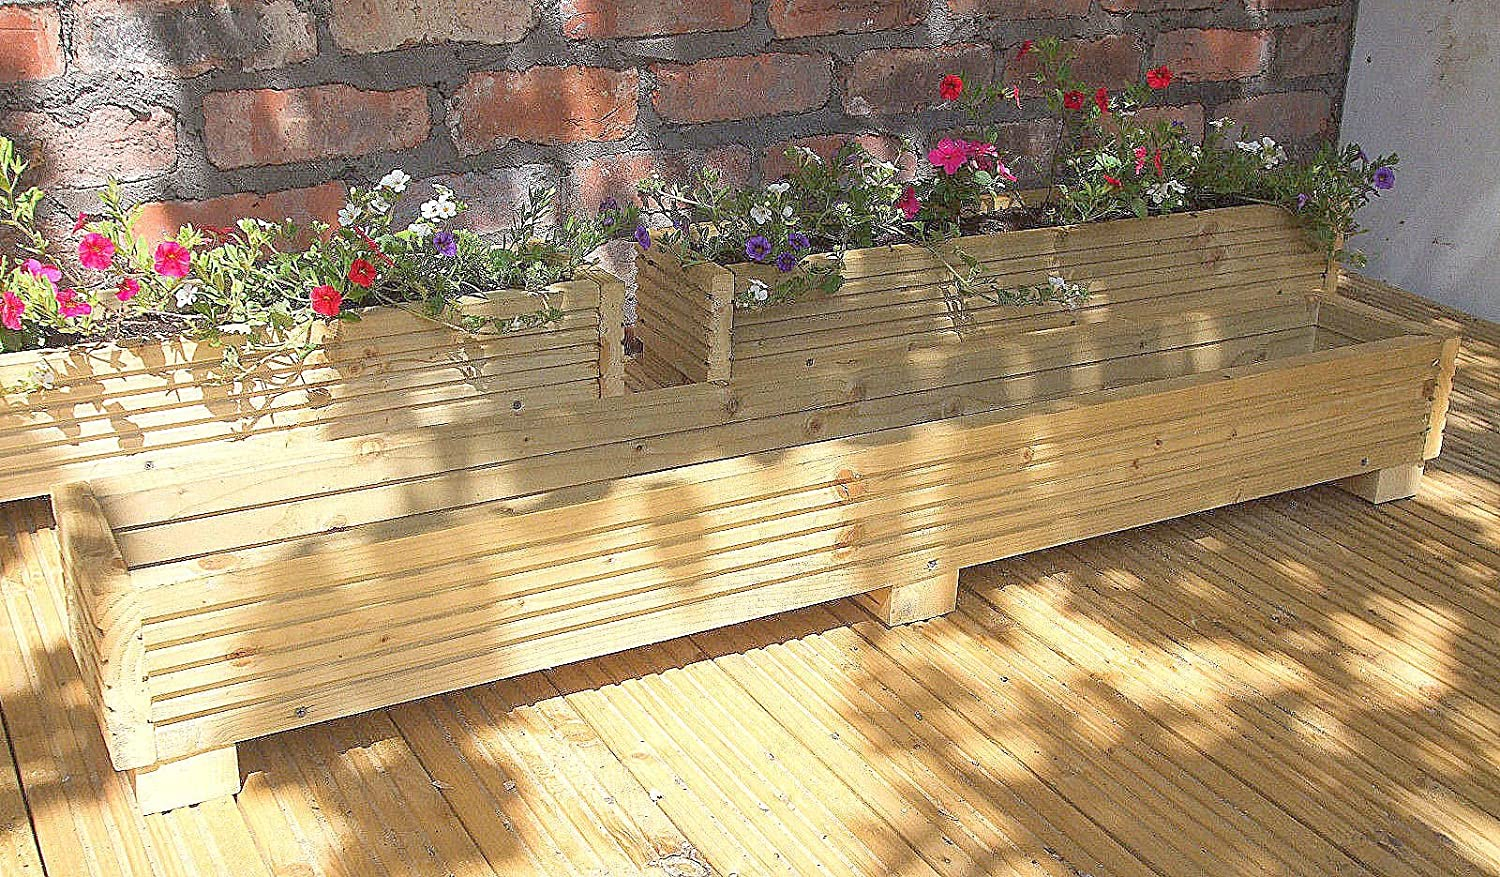 Deck Planter Box 120cm Handmade Wooden Planter Boxes Pressure Treated Wooden Planters A Wooden Garden Planters With A Natural Finish GWHandyman©